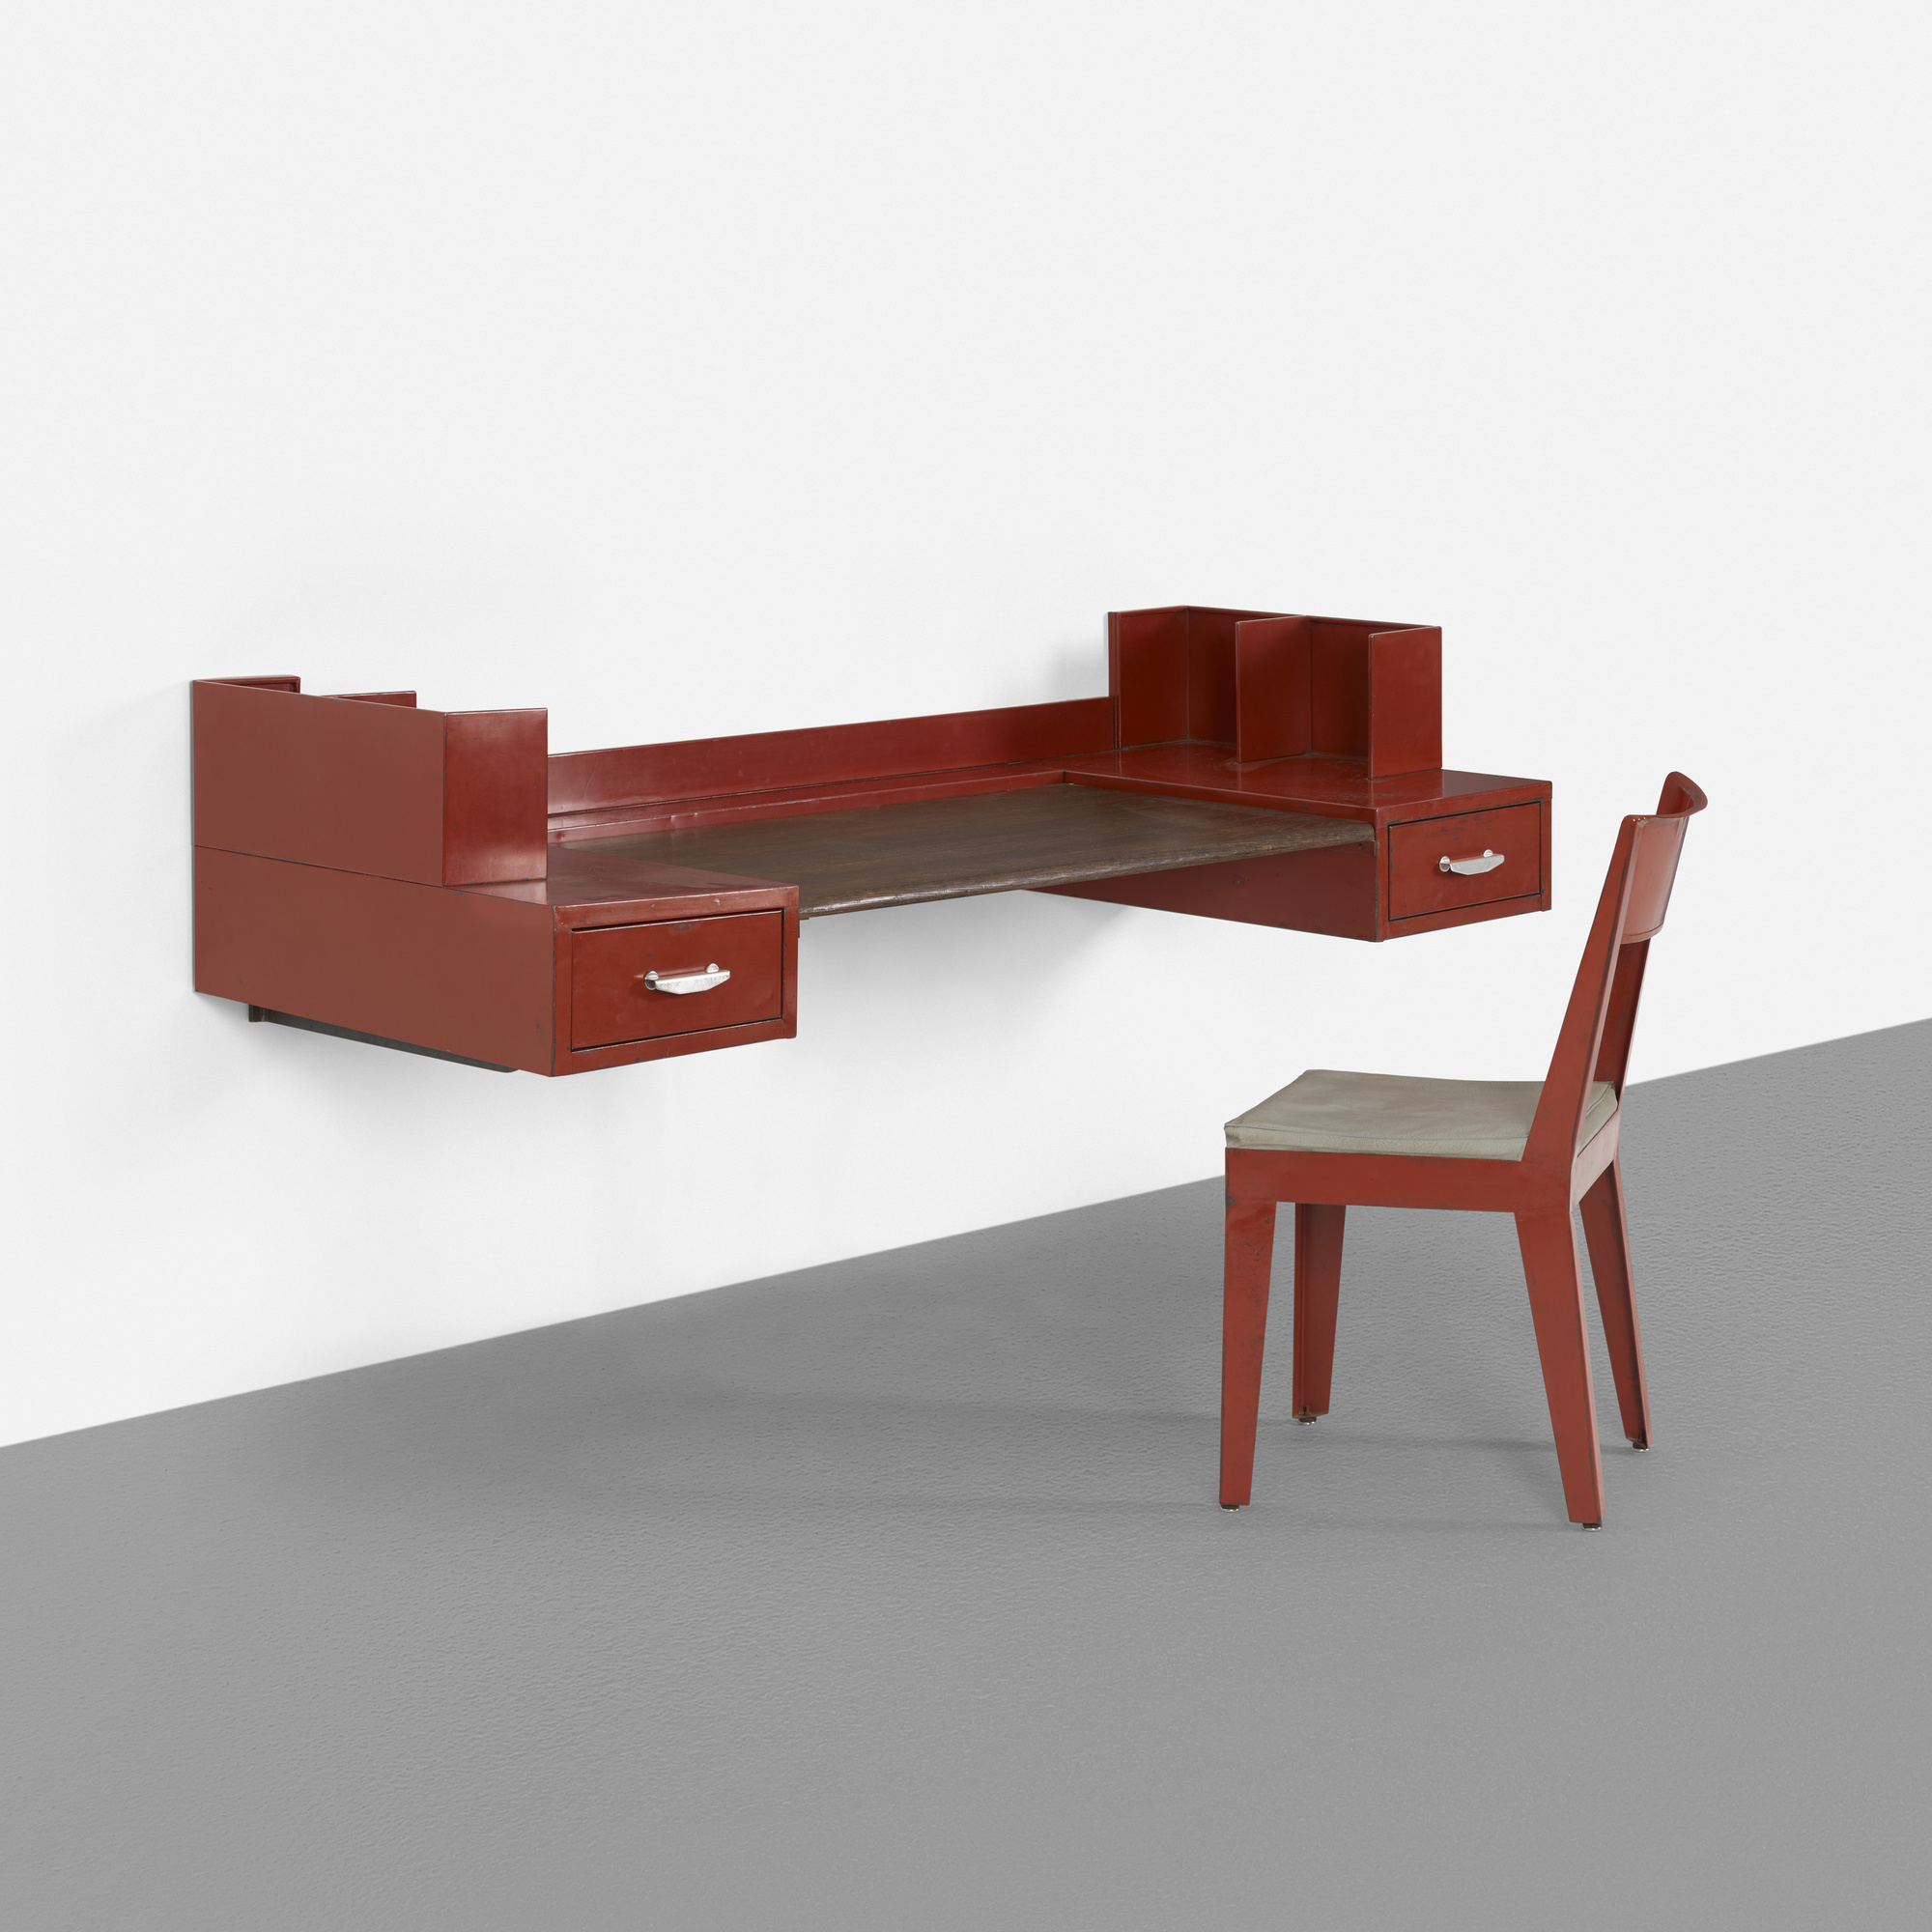 129: JEAN PROUVÉ AND JULES LELEU, wall-mounted desk and chair for ...